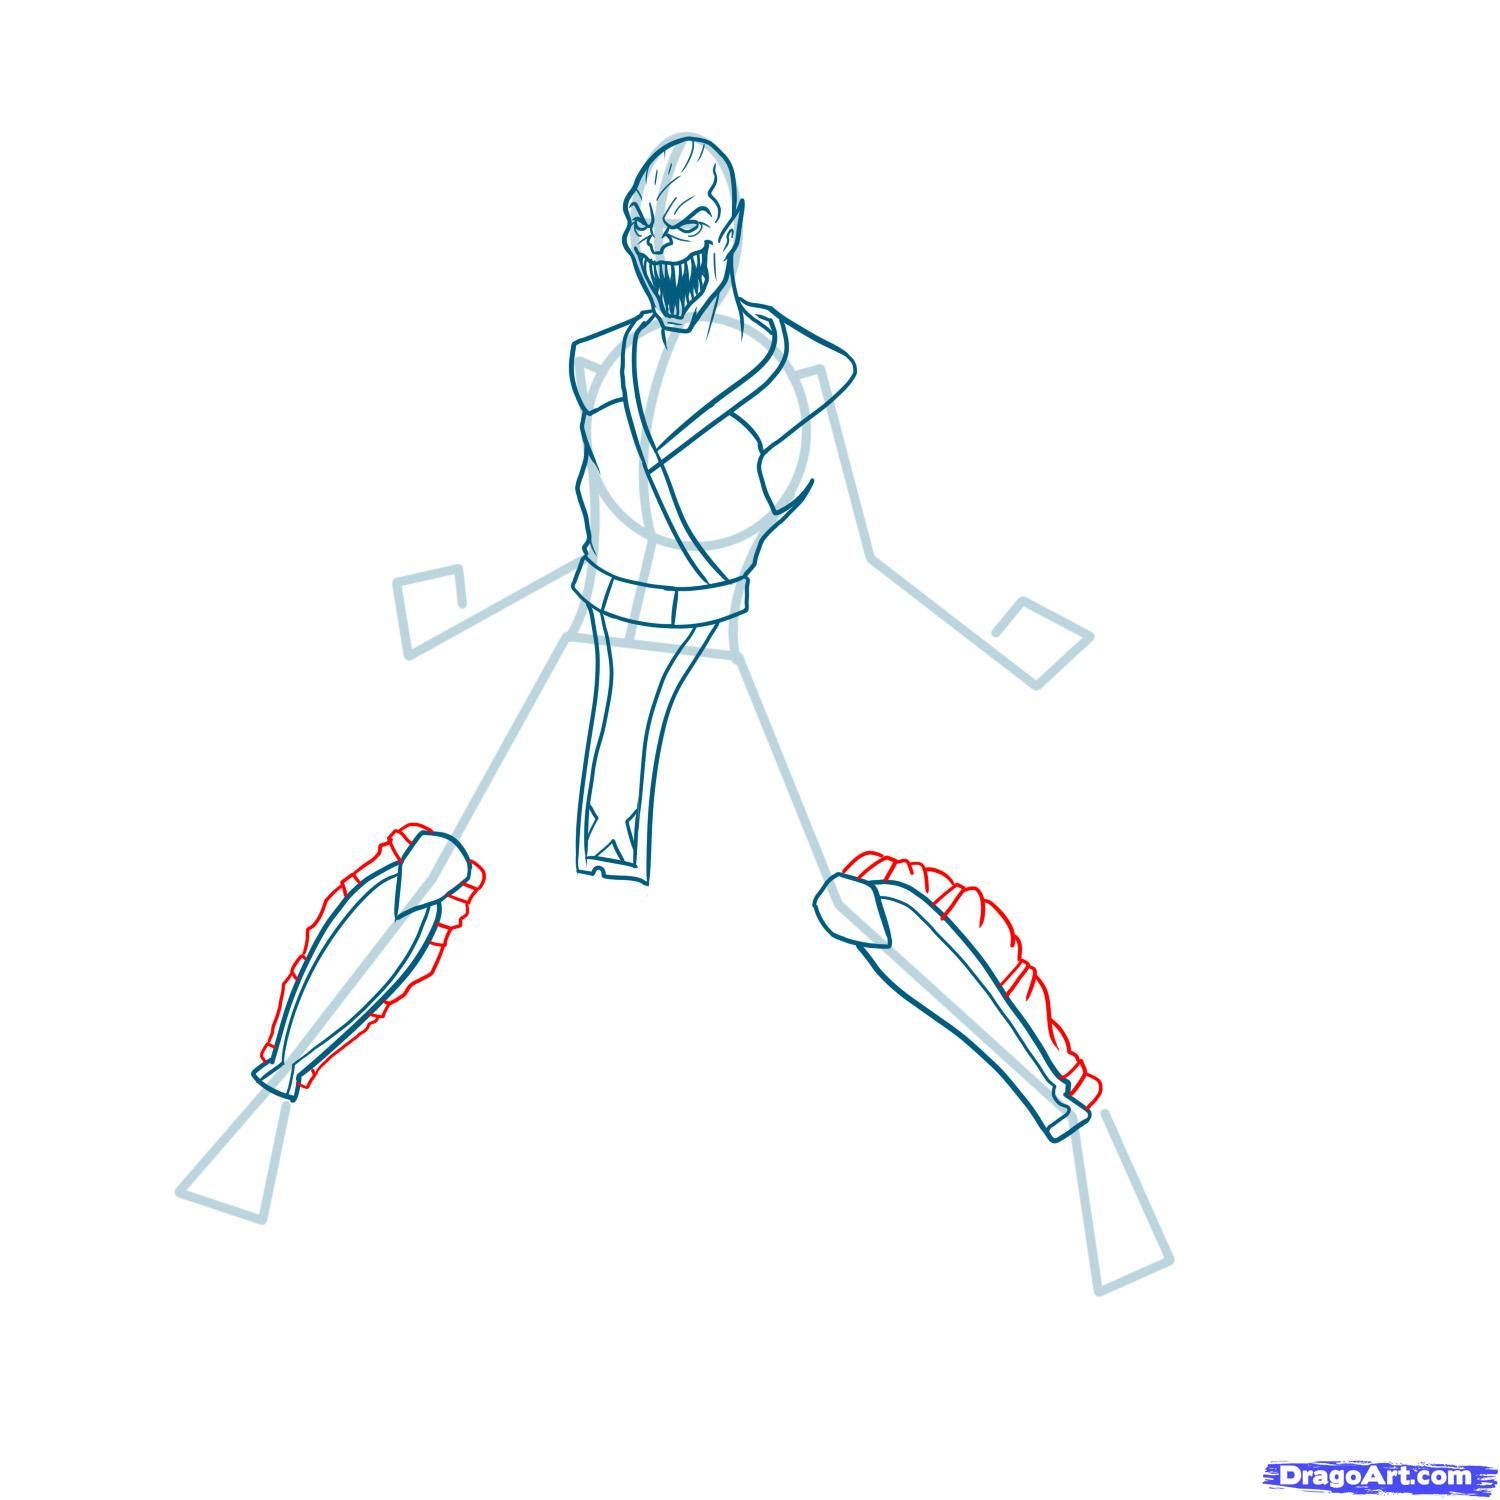 How to draw the Scorpion to the utmost from Mortal Kombat with a pencil step by step 10